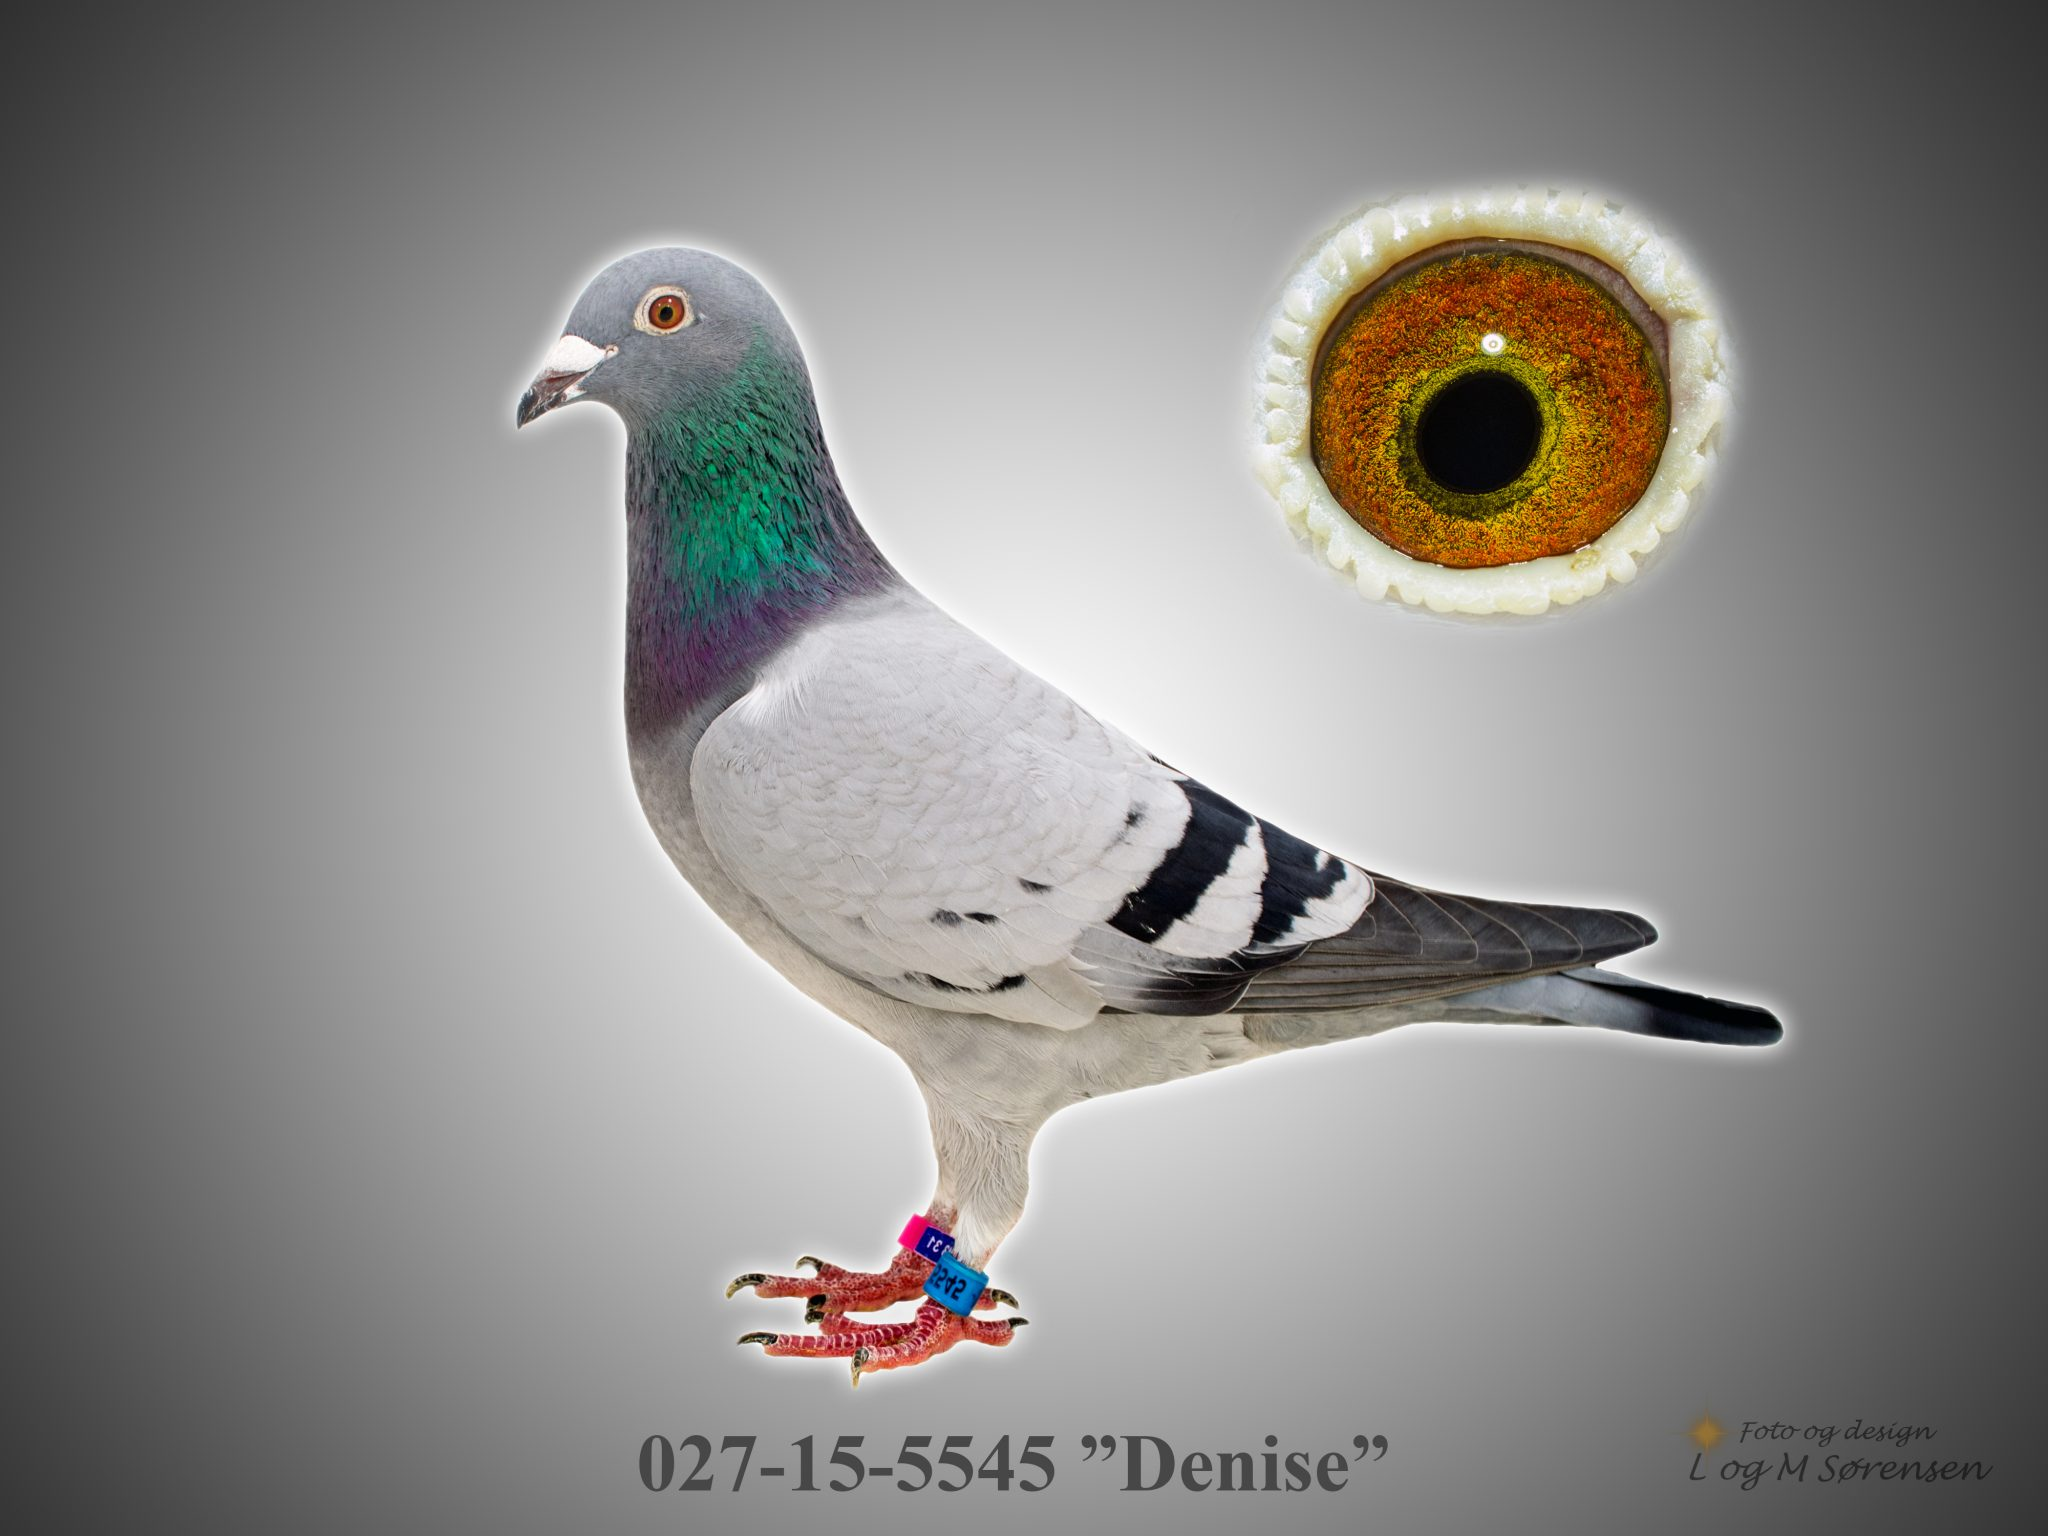 "Rede 17 A 027-15-5545 ""Denise"""